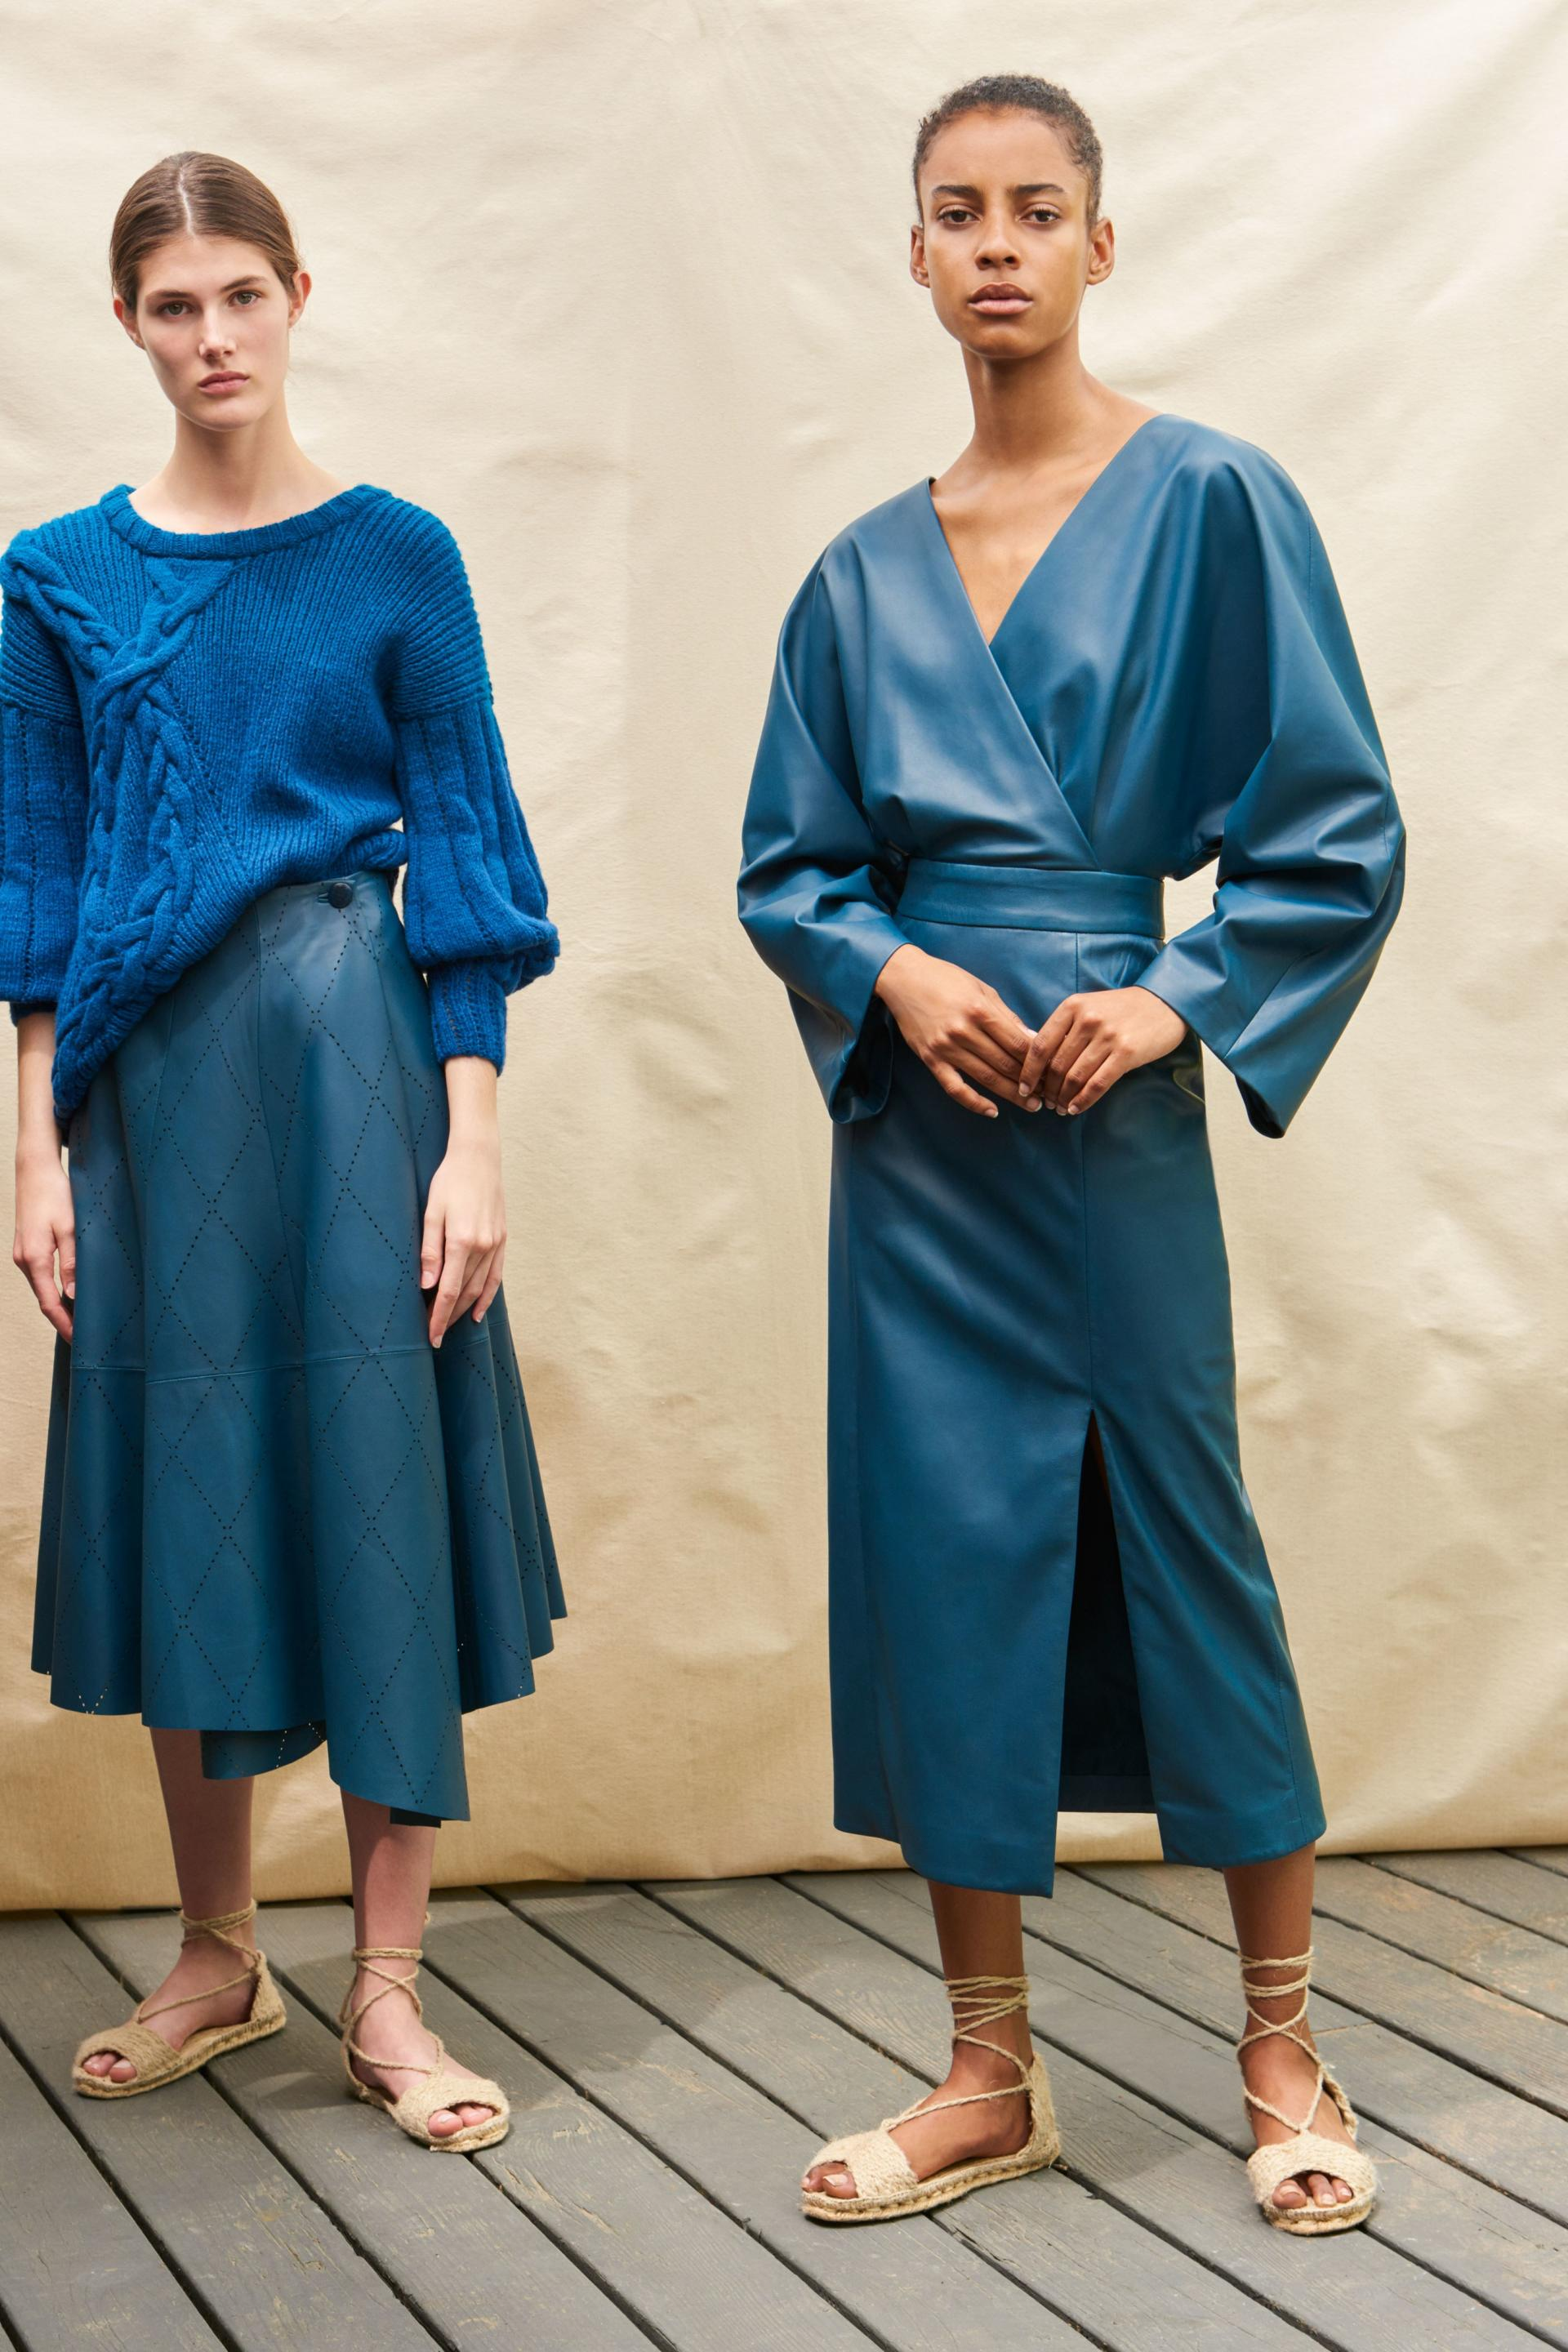 How to wear colour |Monochromatic blue inspiration from Alejandra Alonso Rojos |It's time to be bold and add some colour to your style. But, how? Here is your inspiration for colours to wear this year and how to wear them. From single pieces, to monochromatic and tonal, to colour blocking, all the inspiration you need for adding colour no matter what your style is here. | kittyandb.com #howtowearcolour #colourinspiration #howtowear #womensoutfitideas #monochromatic #blueoutfit